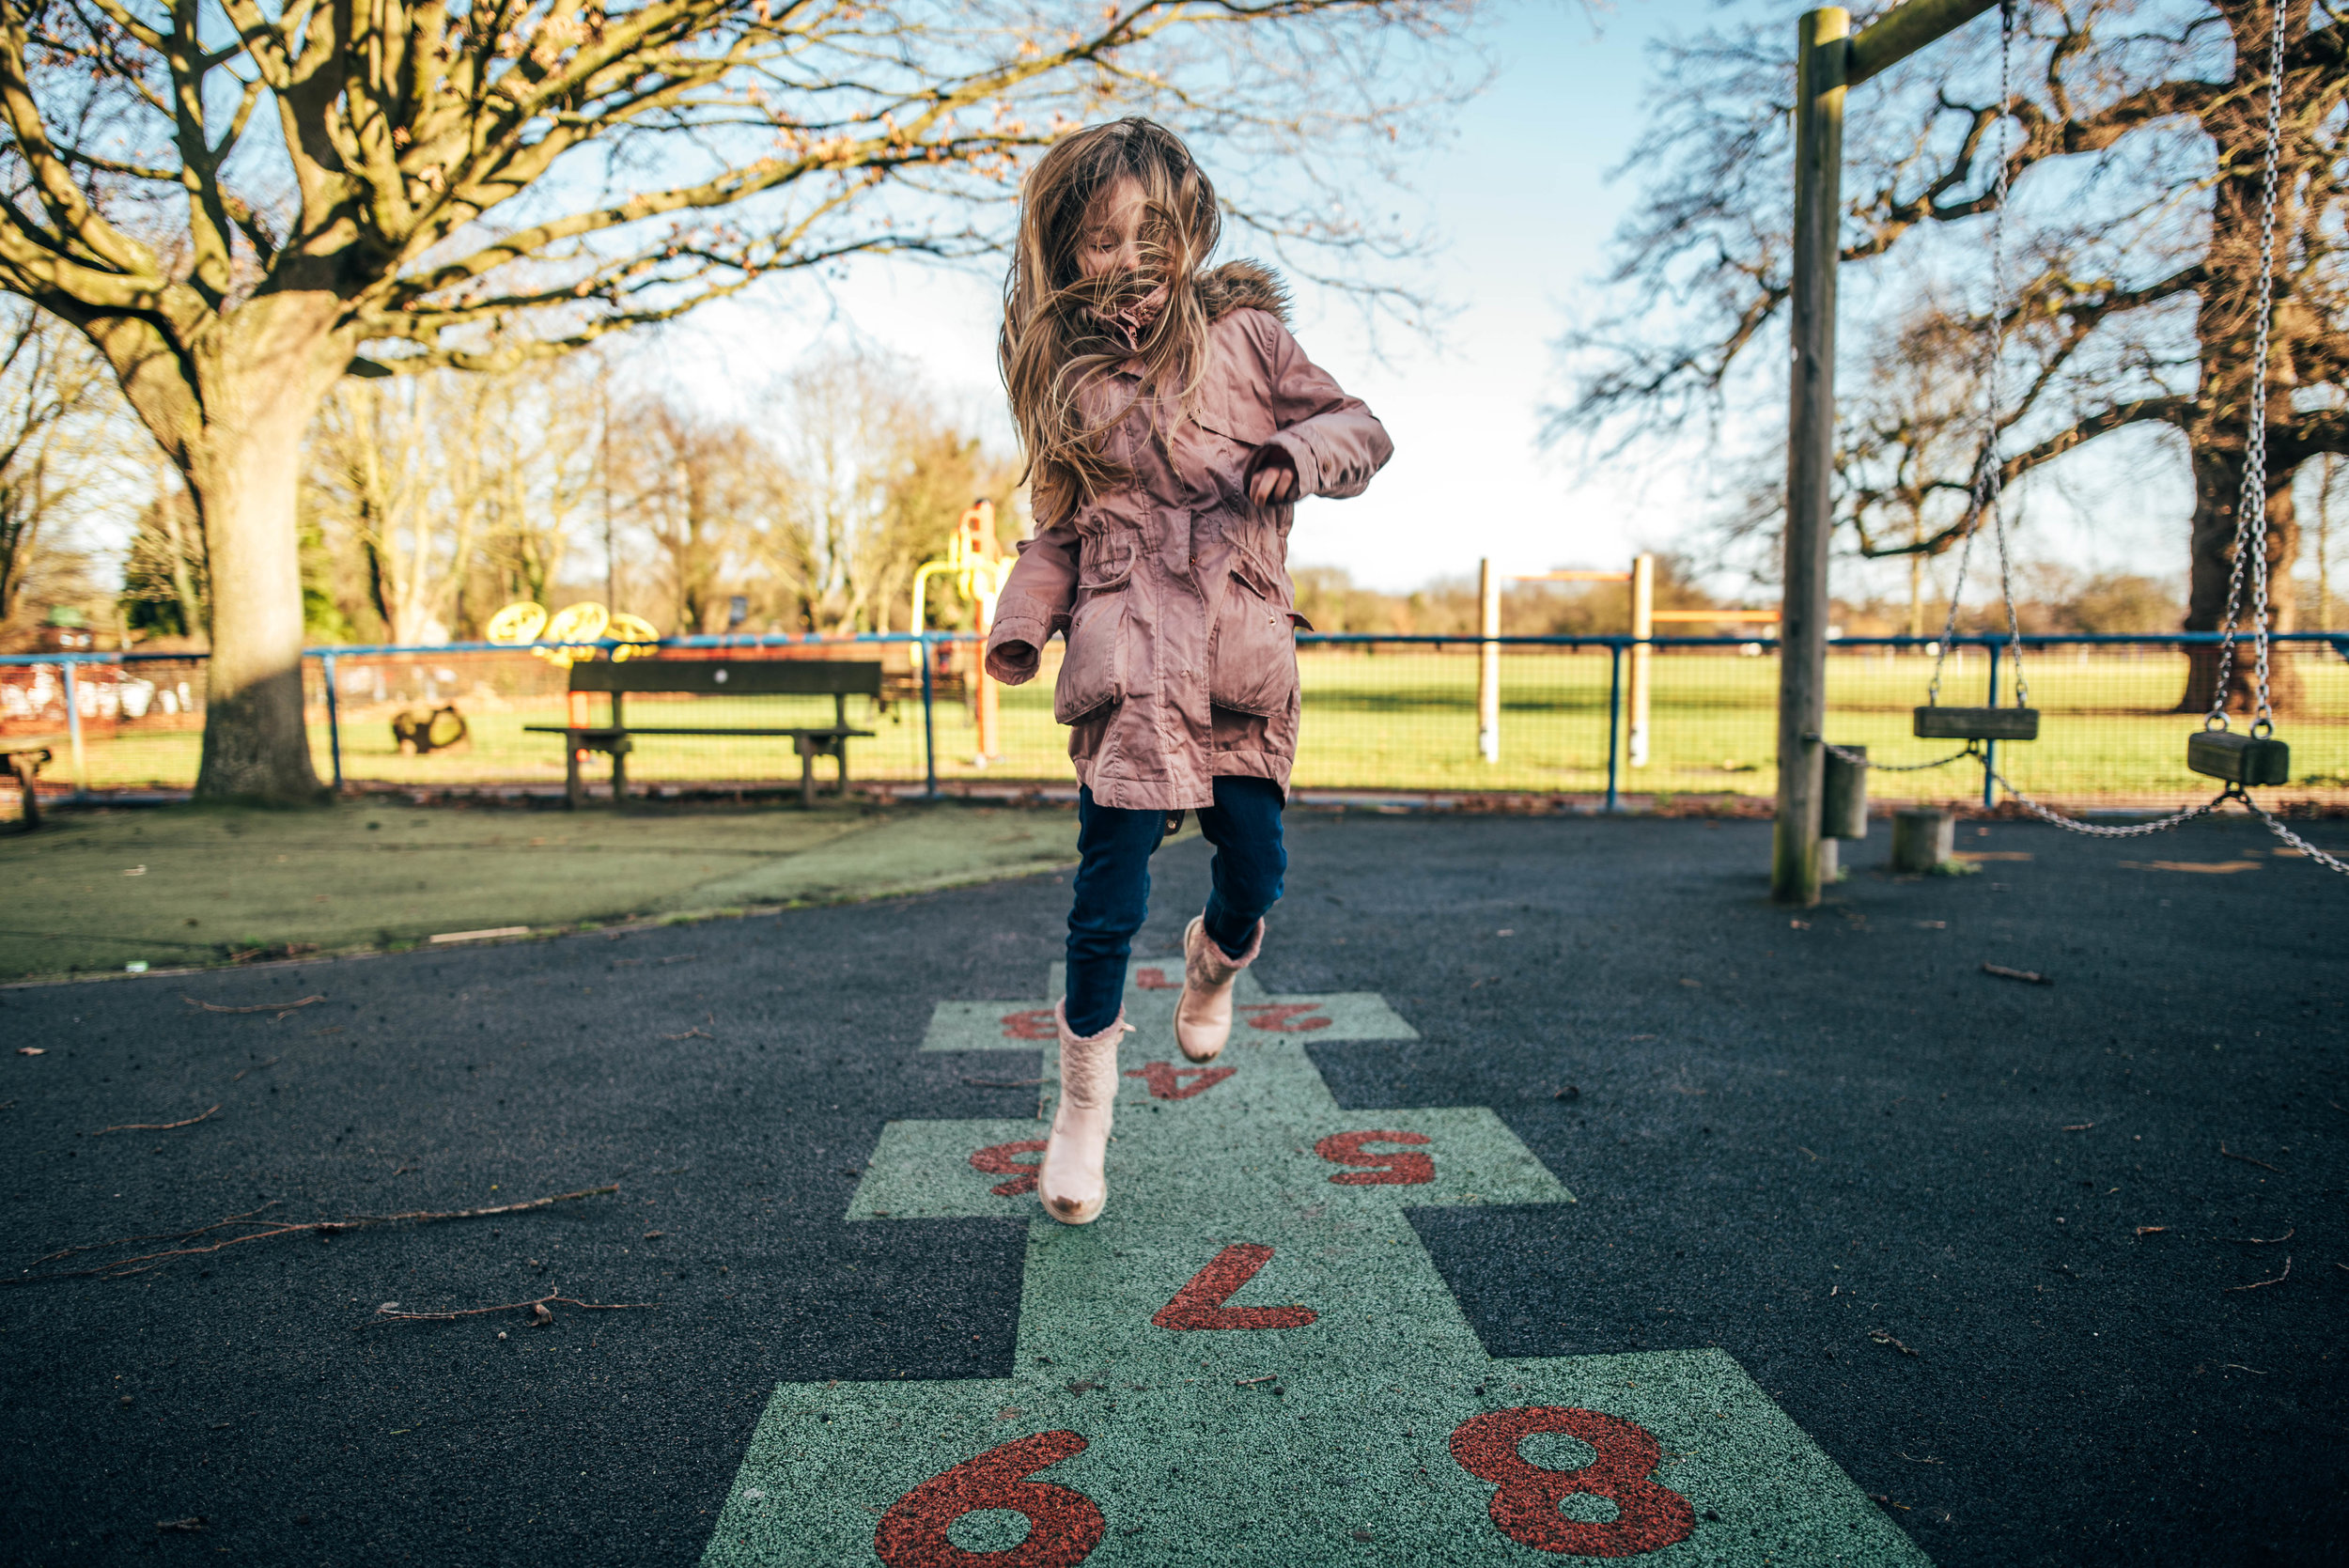 Girl plays hopscotch in winter park Essex UK Wedding Documentary Photographer